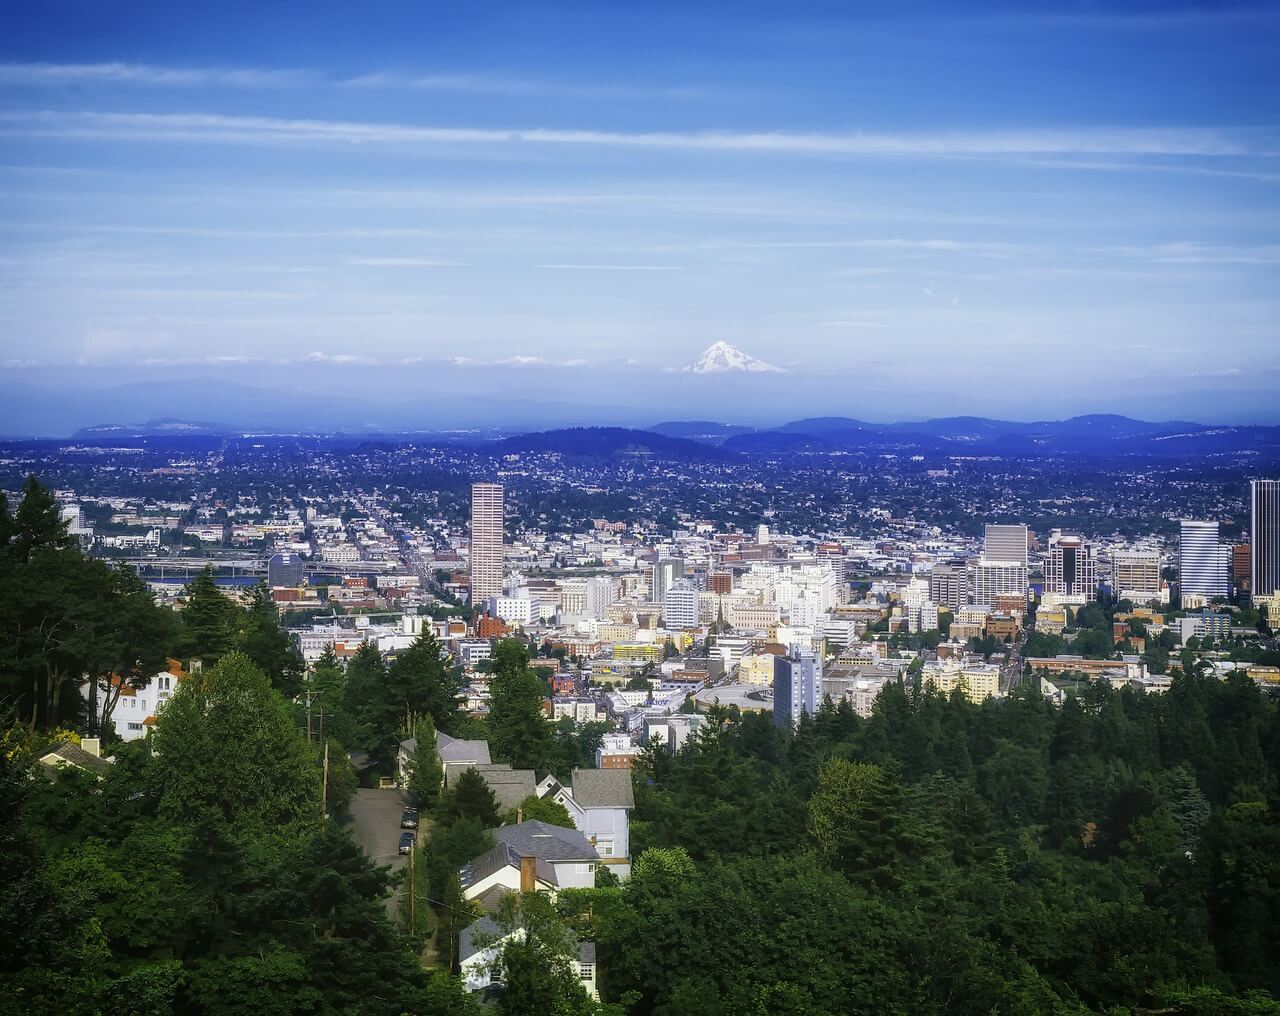 Techsmartest.com - Which Of The Following U.S. Cities Is The Best Example Of Smart Growth? - Portland